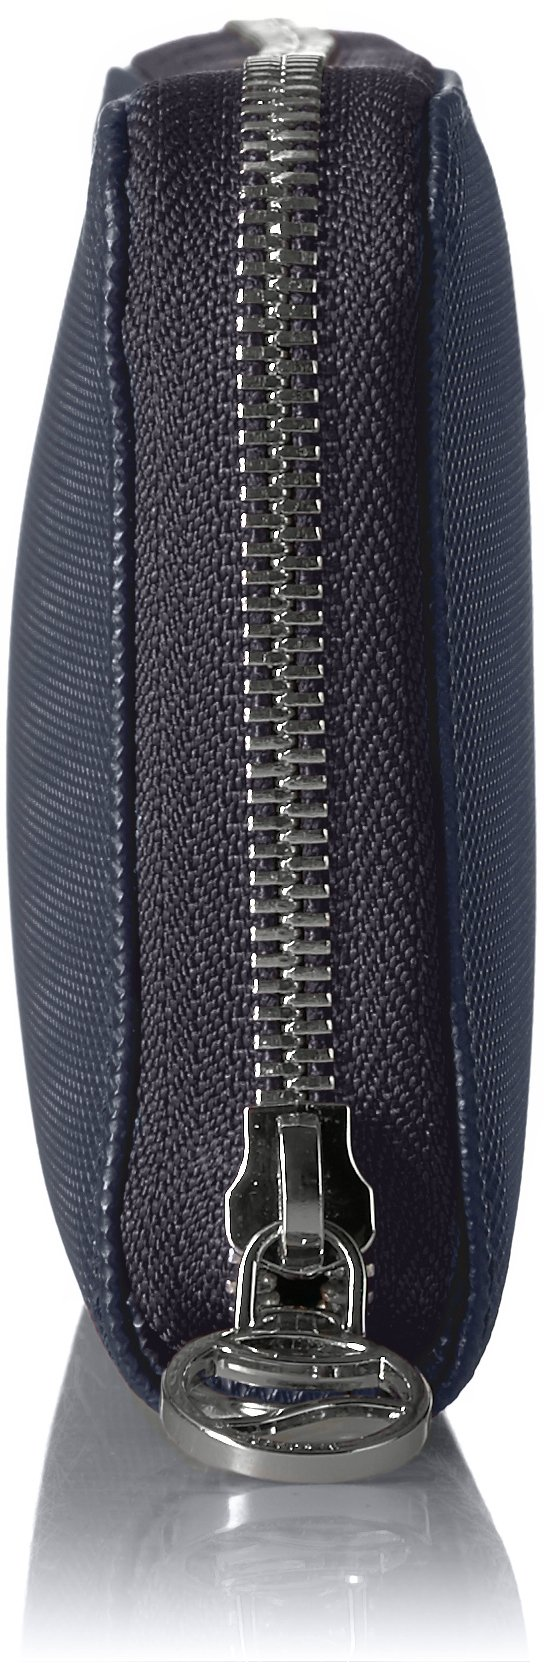 XLARGE WRISLET ZIP WALLET, NF2498DC Wallet, PEACOAT, One Size by Lacoste (Image #3)